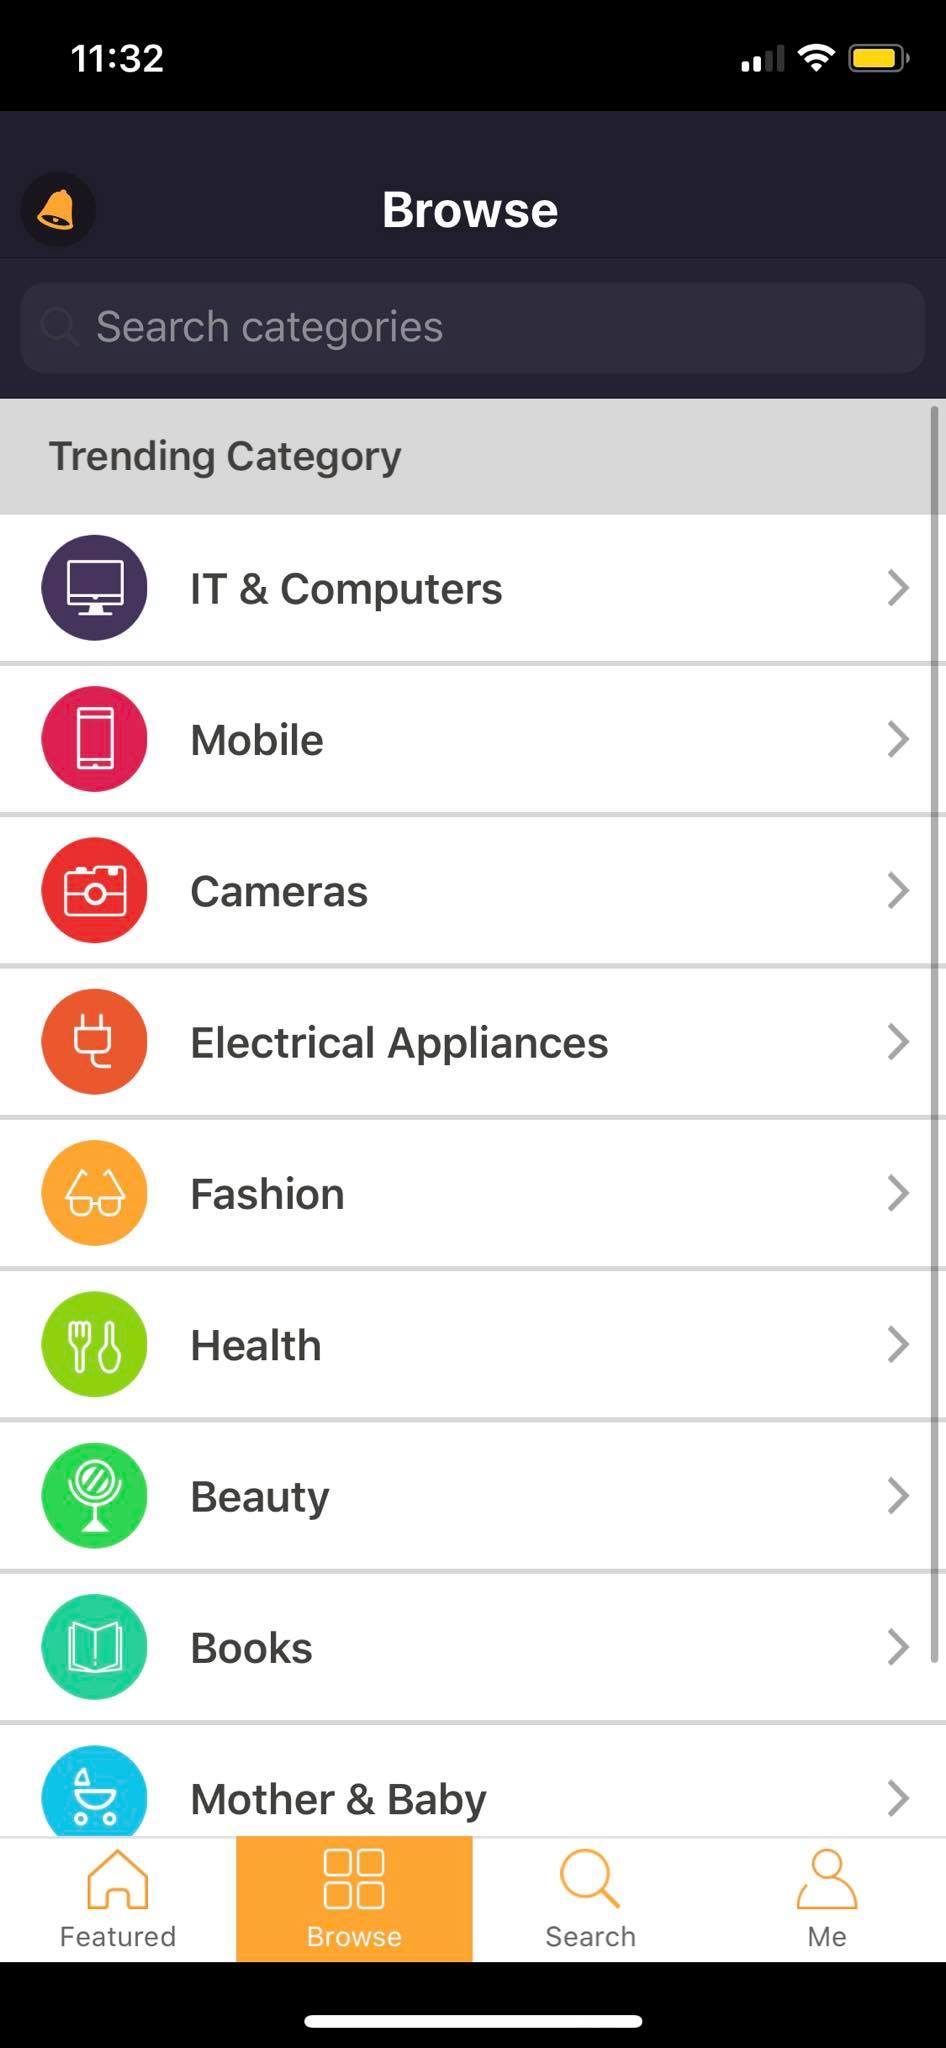 Browse Category on iOS by Priceza from UIGarage